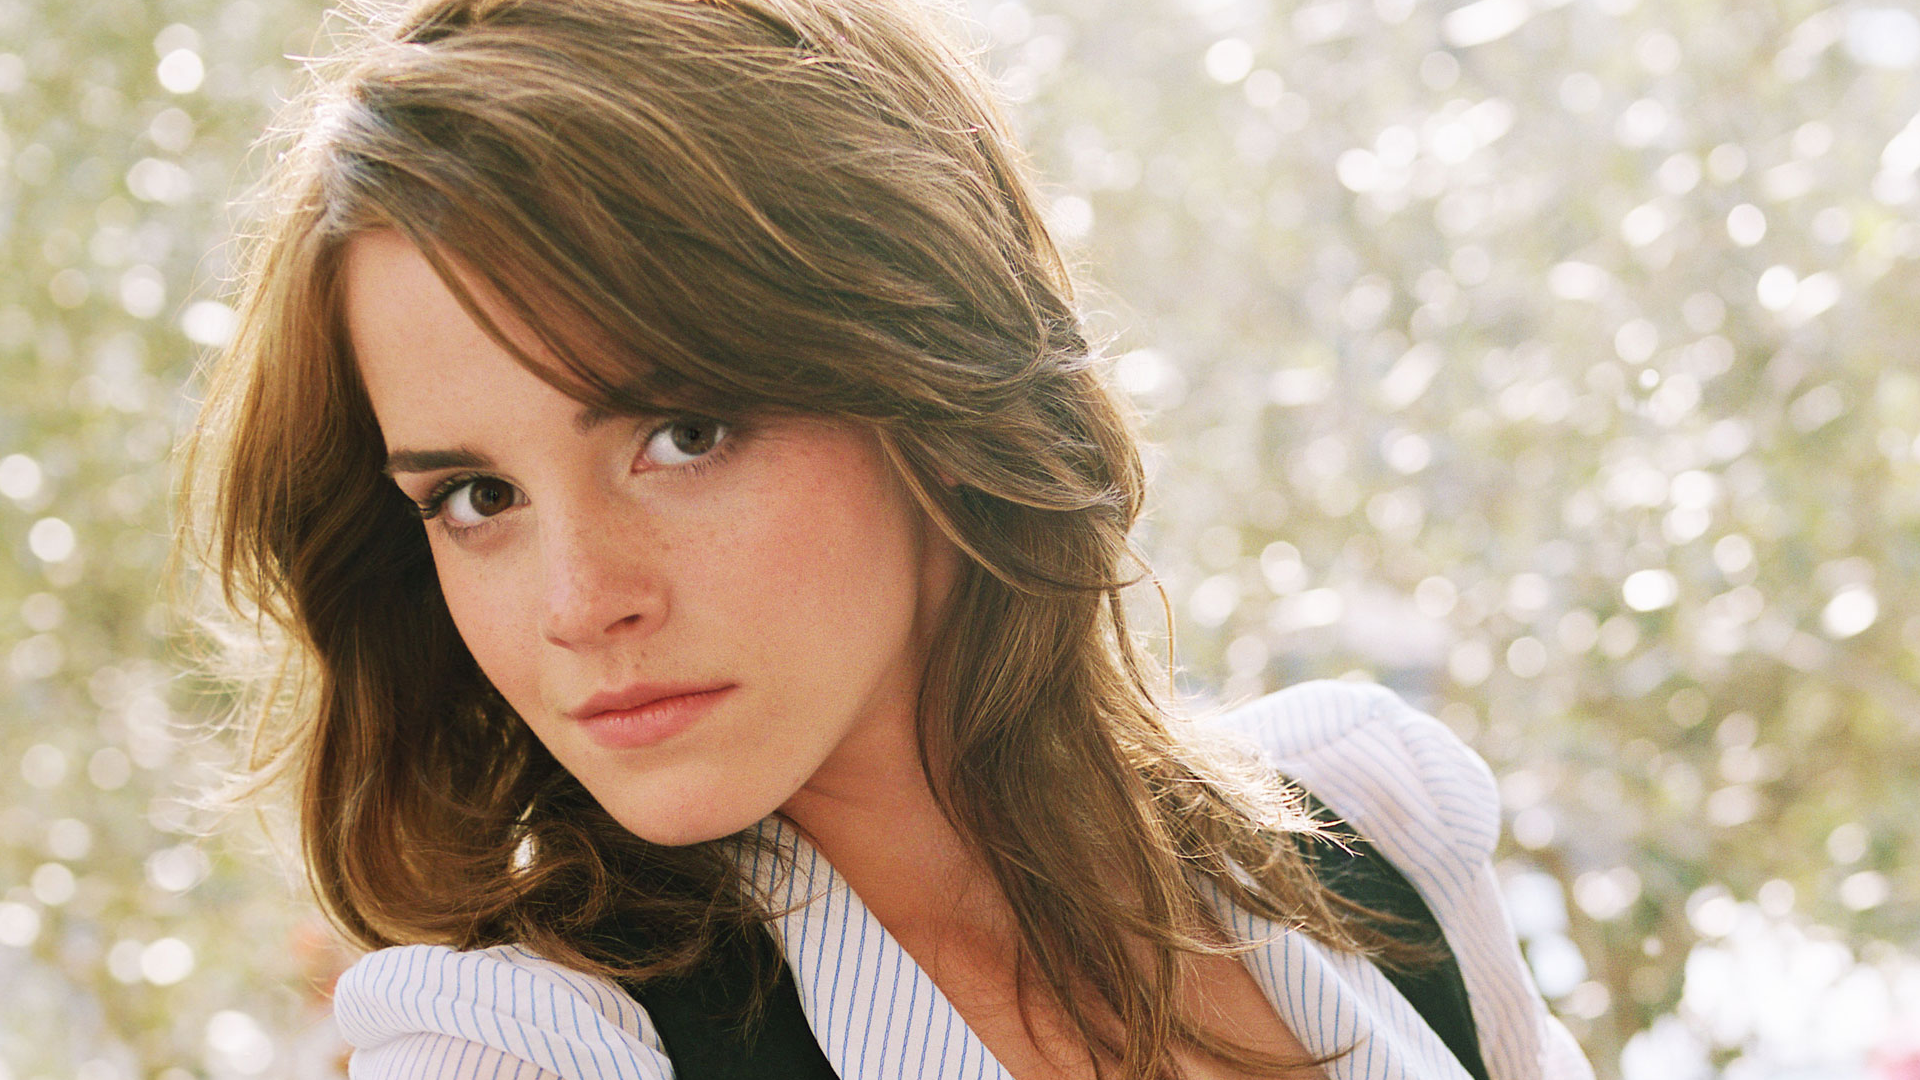 emma watson wallpaper 1920x1080 wallpapersafari